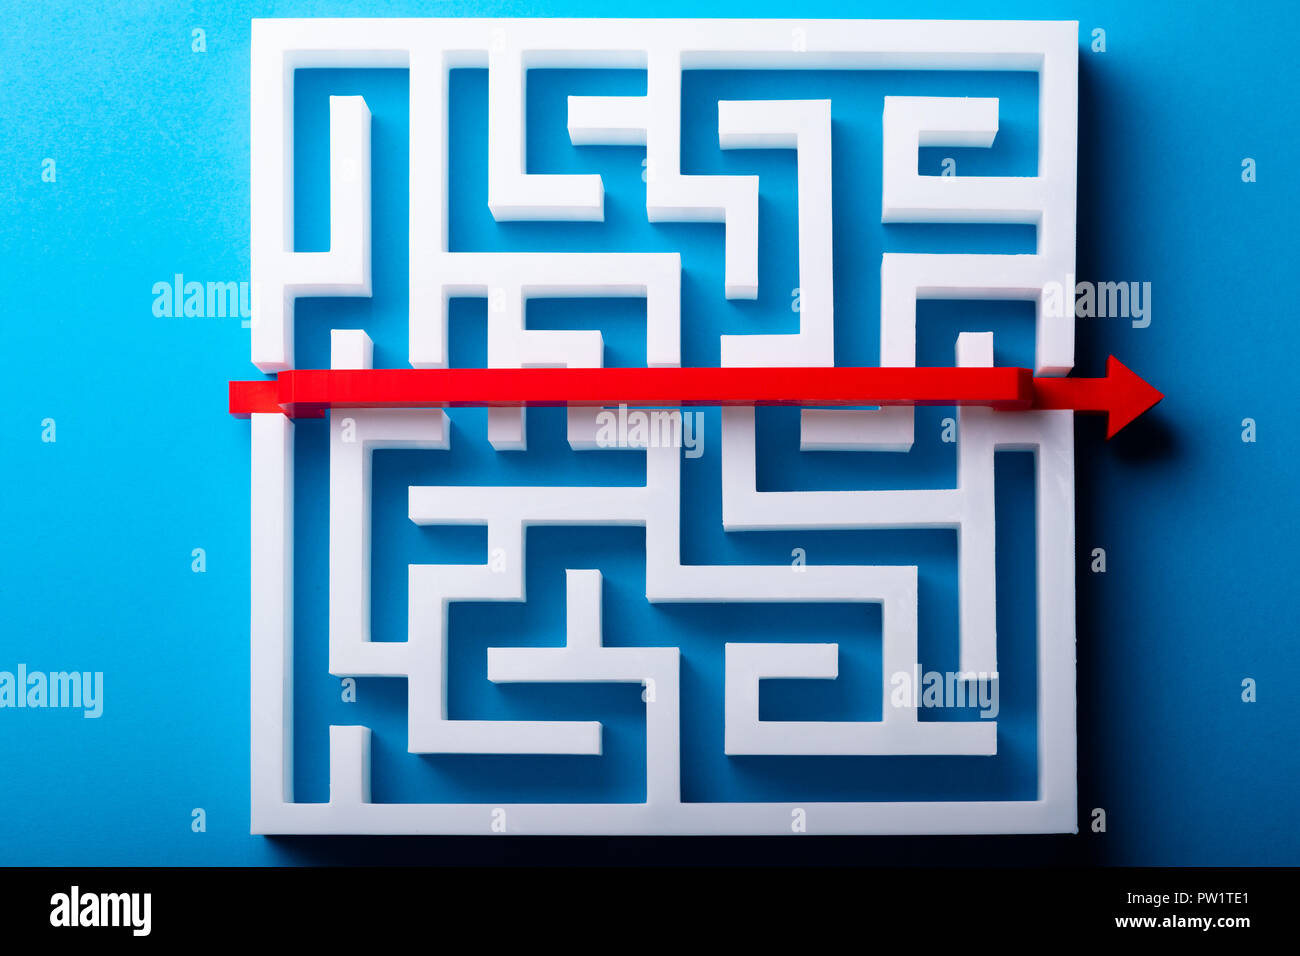 Elevated View Of Red Arrow Crossing Over White Maze On Blue Background - Stock Image